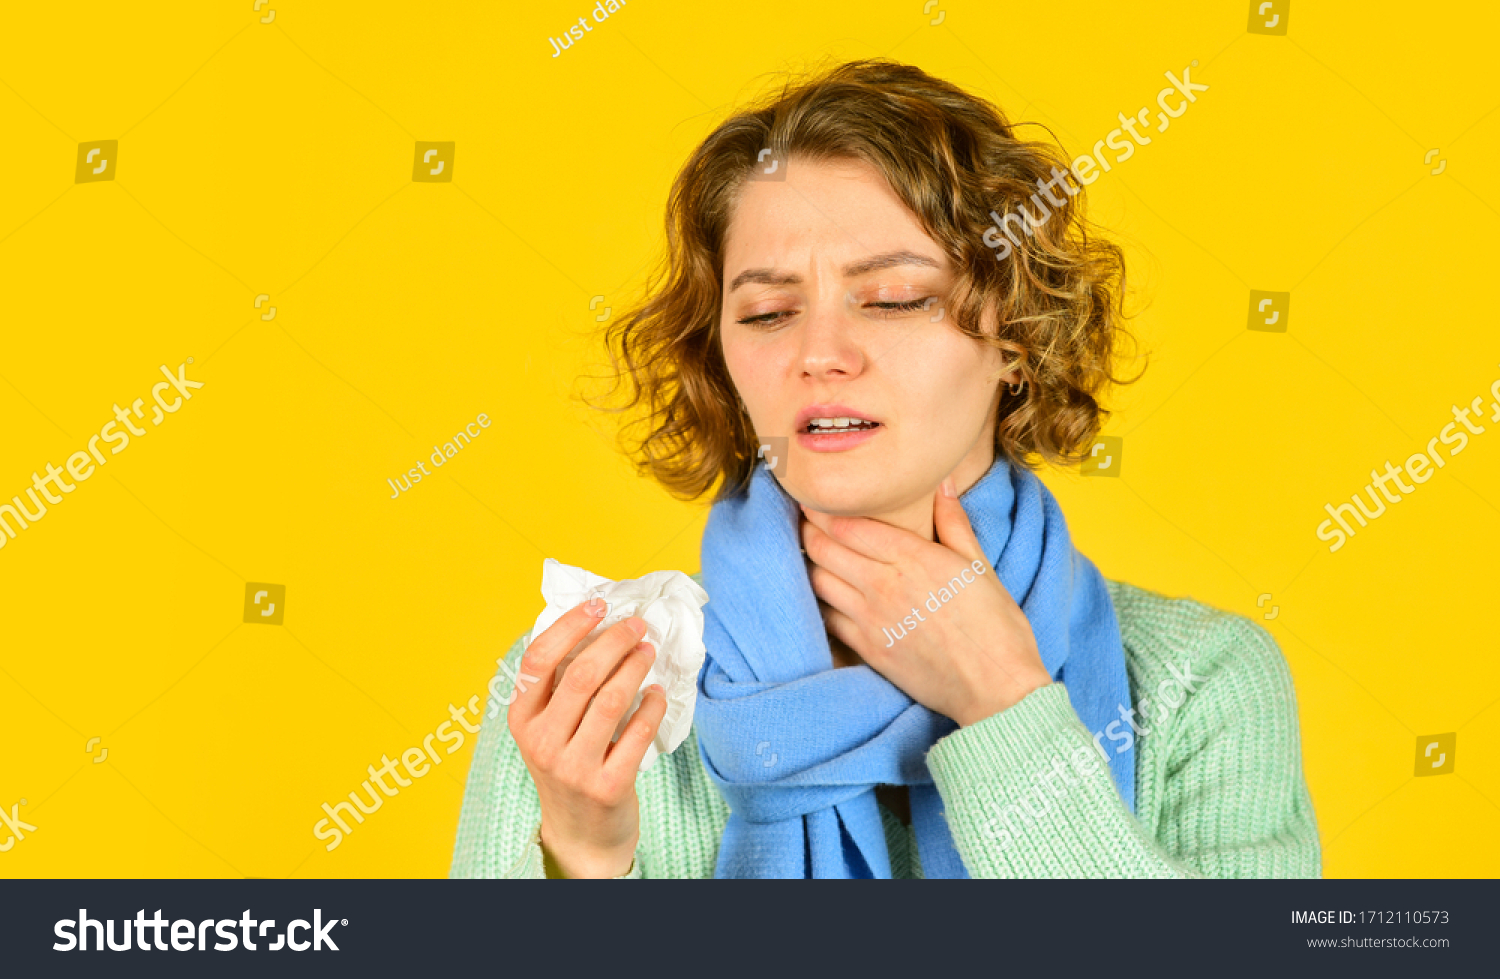 runny nose caused by illness. ill with laryngitis. Acute respiratory viral. sick girl with runny nose. influenza infection and pneumonia. Coronavirus outbreak concept. Symptoms of disease. copy space. #1712110573